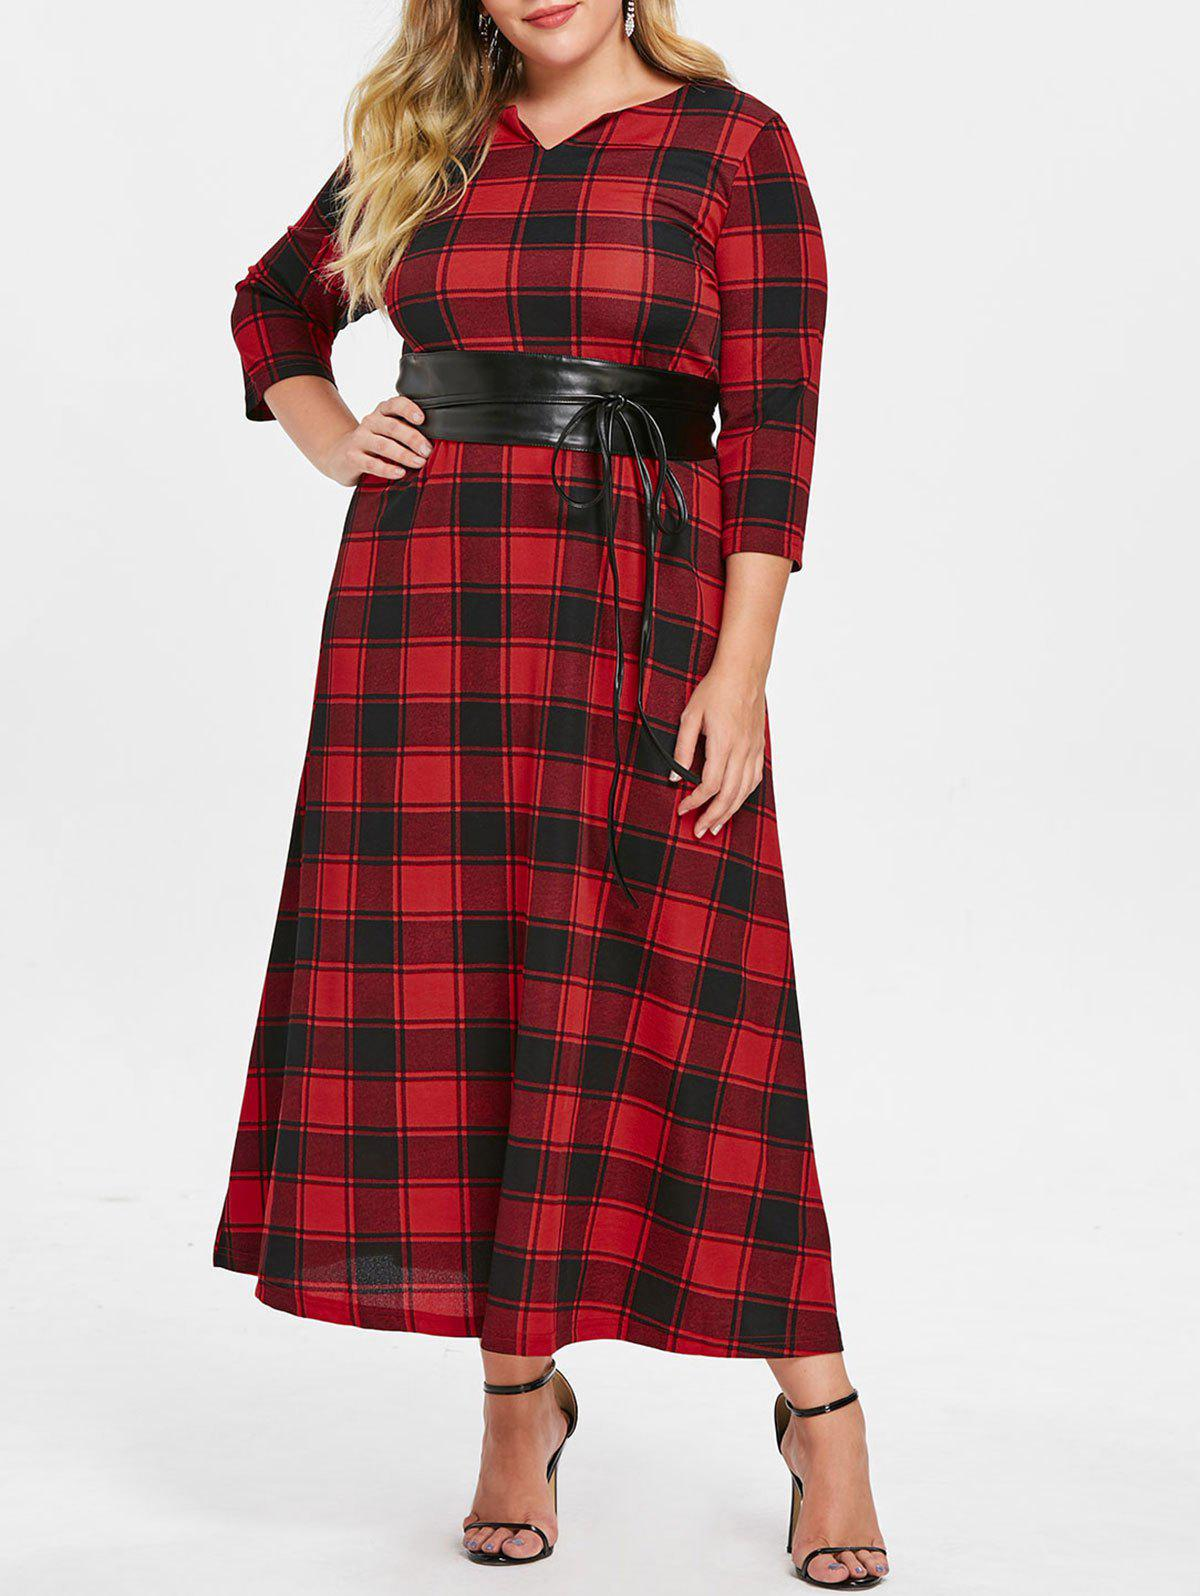 Sale Tartan Plus Size Maxi Dress with Corset Belt